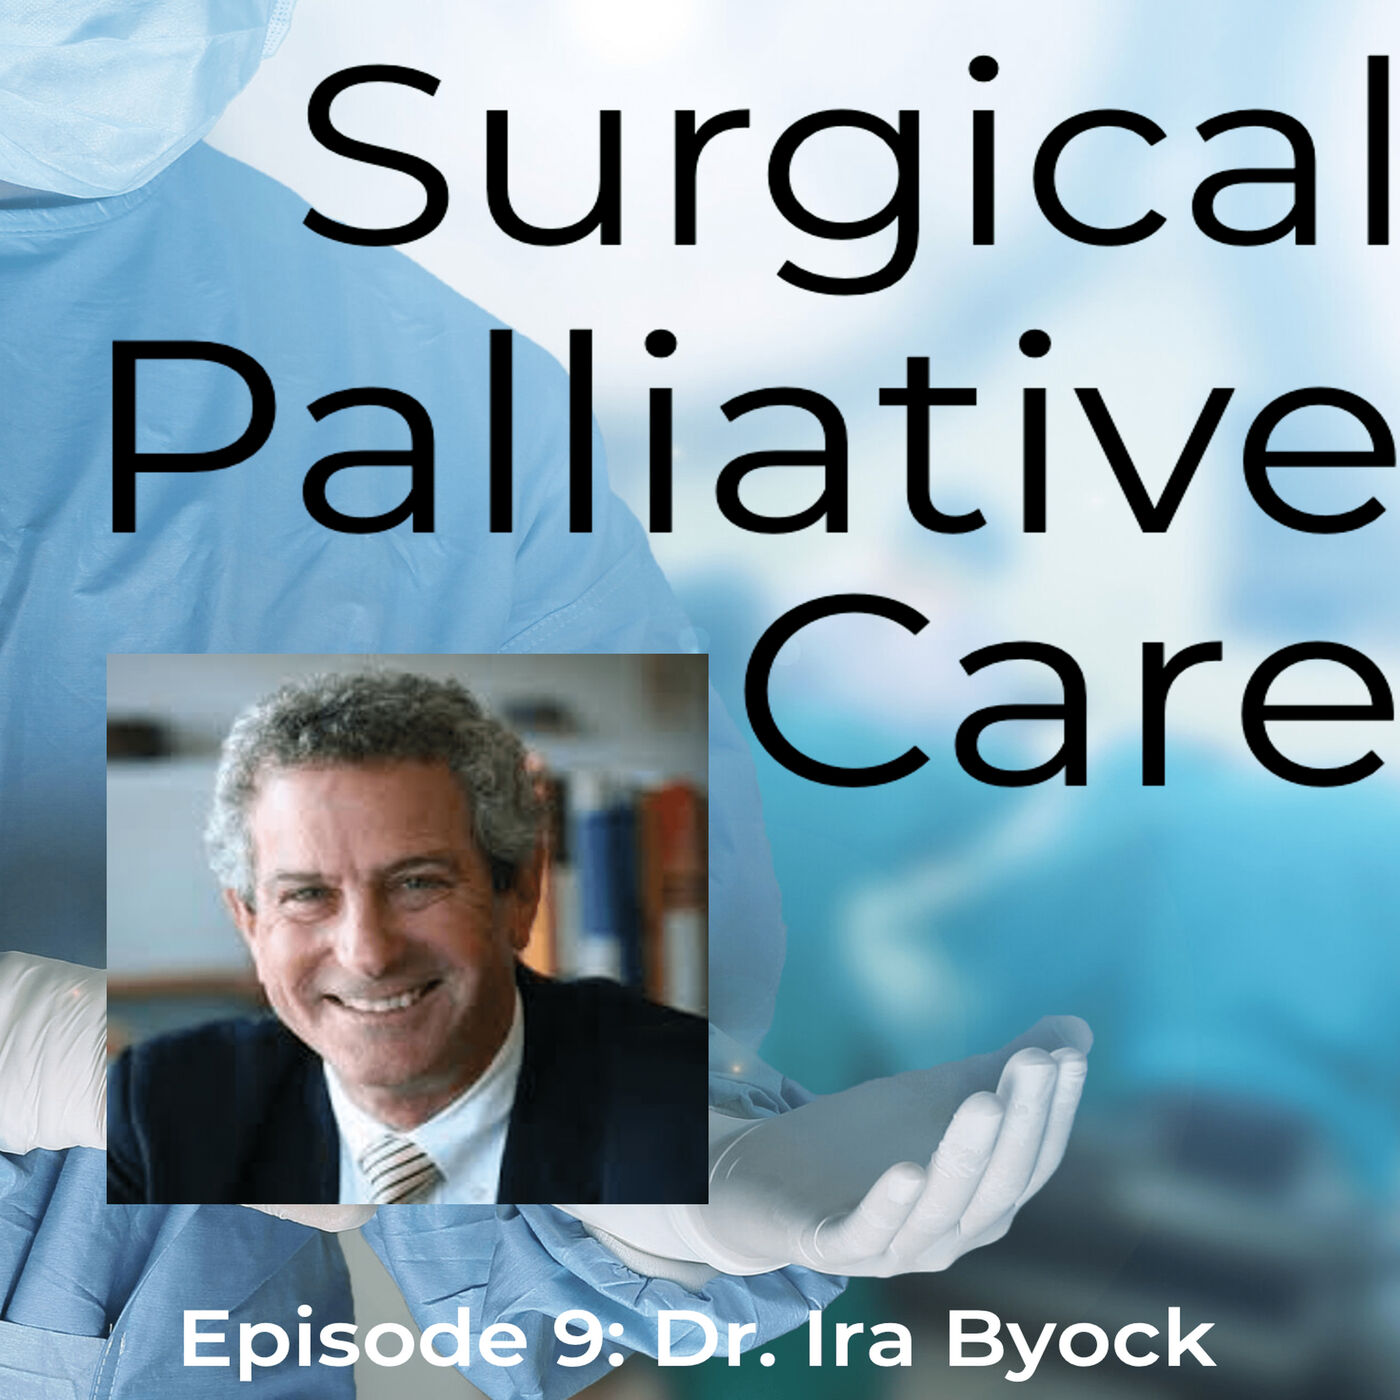 Dr. Ira Byock: National Leader in Palliative Care